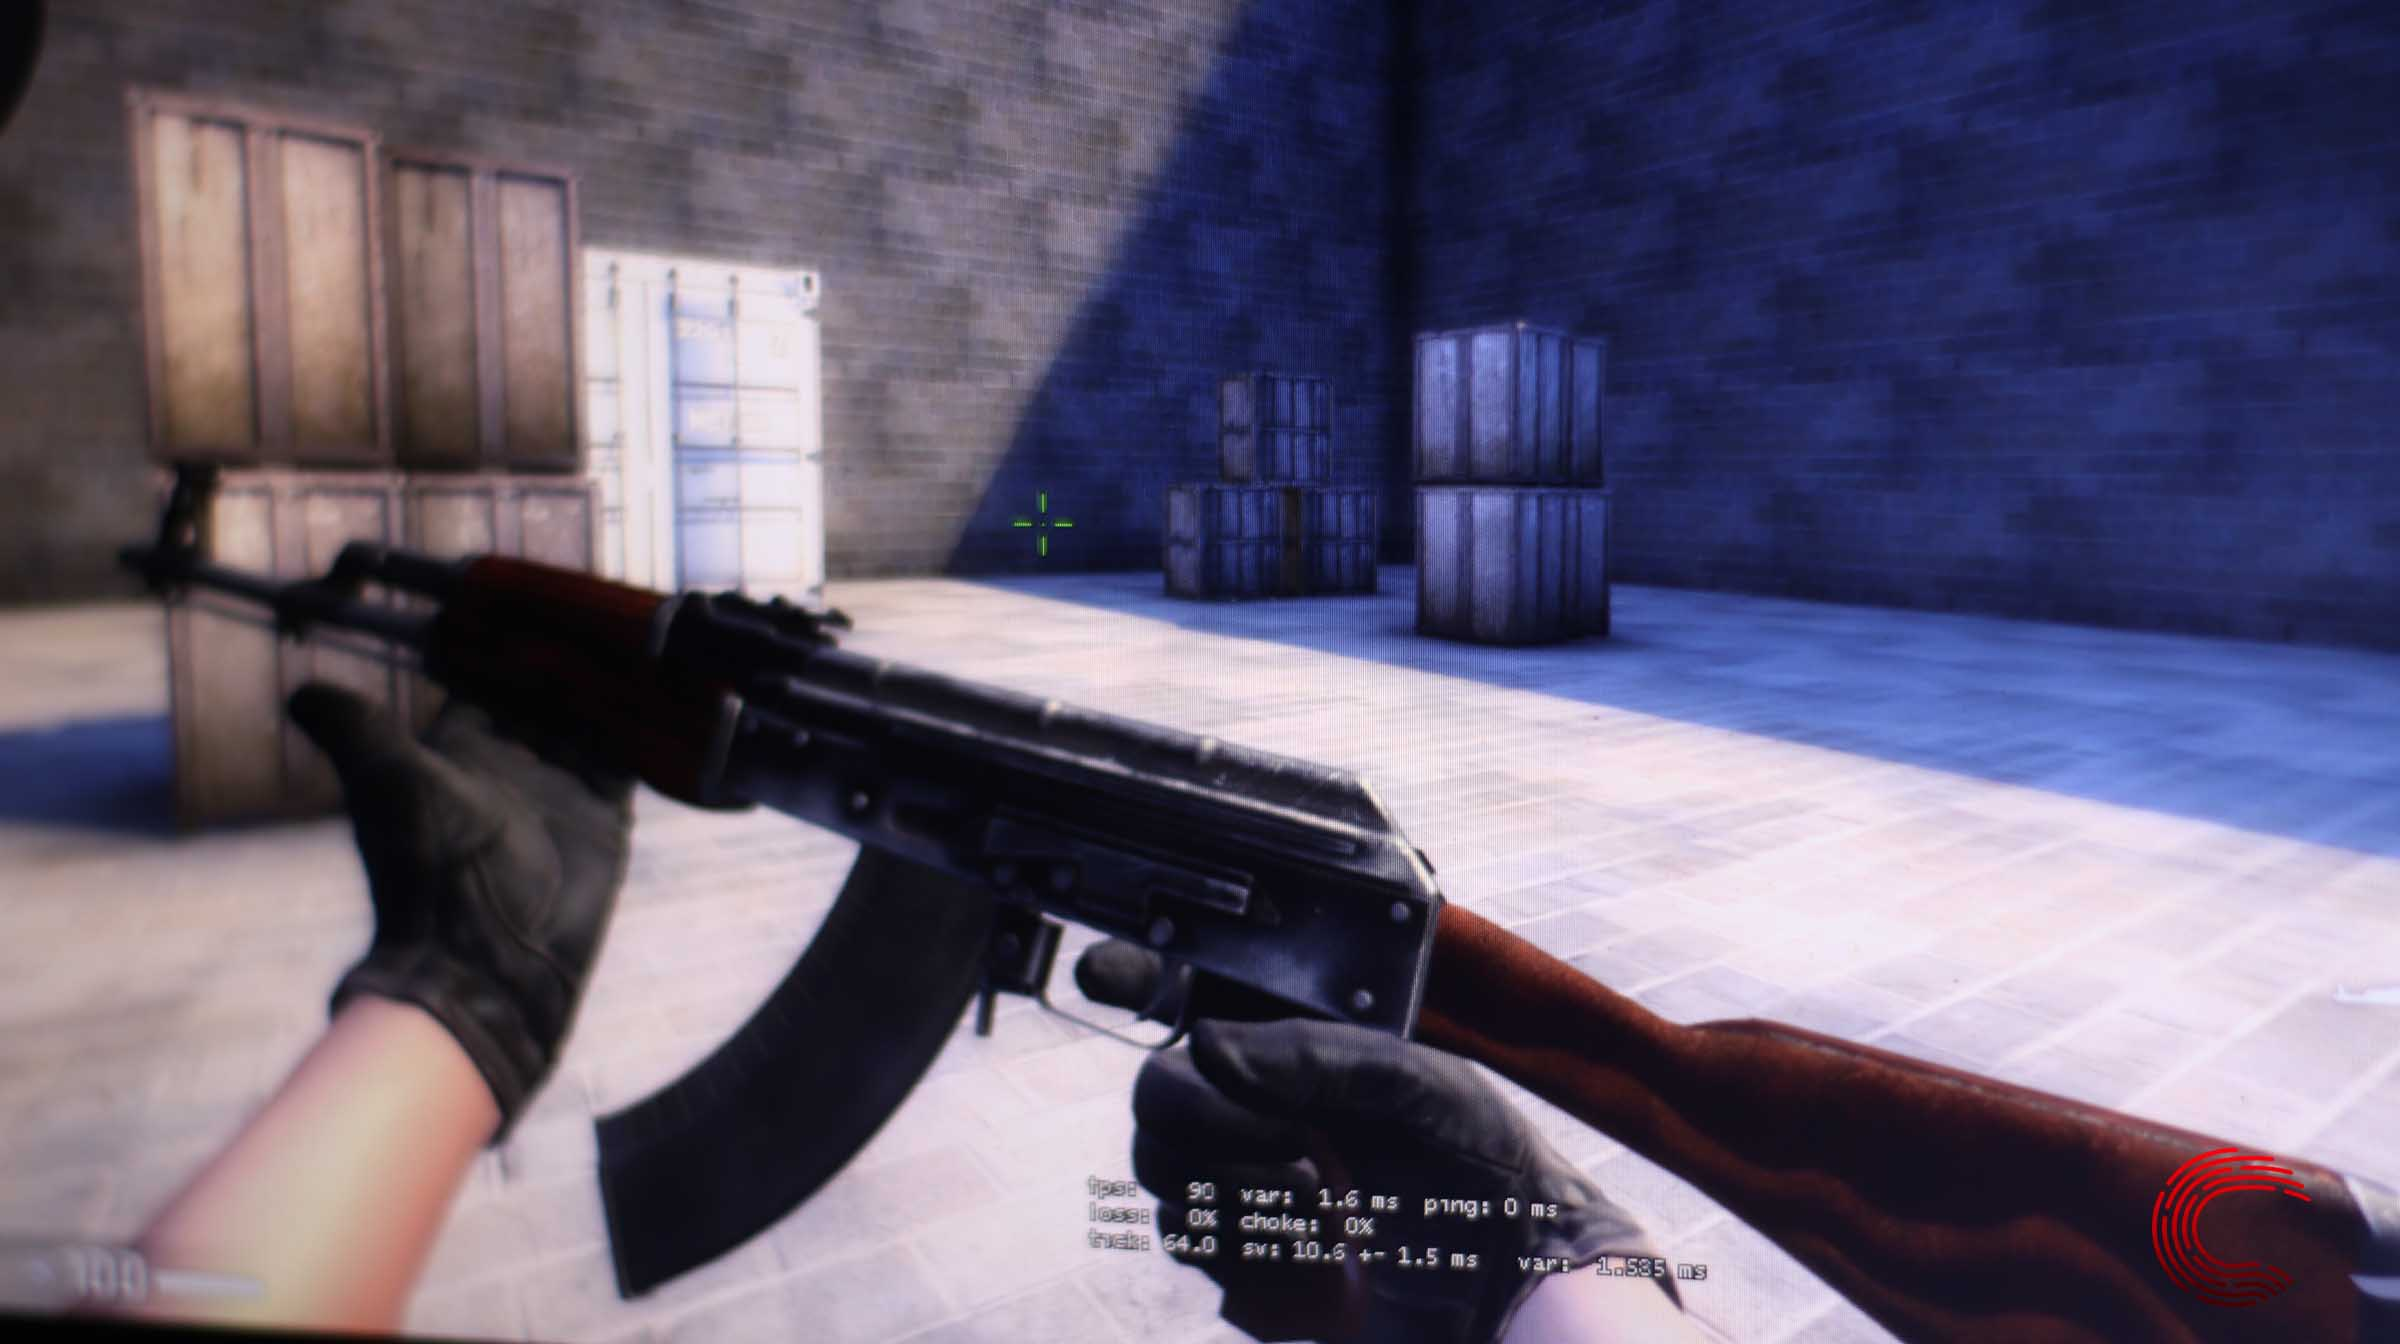 How to change FOV in CSGO? | Candid.Technology